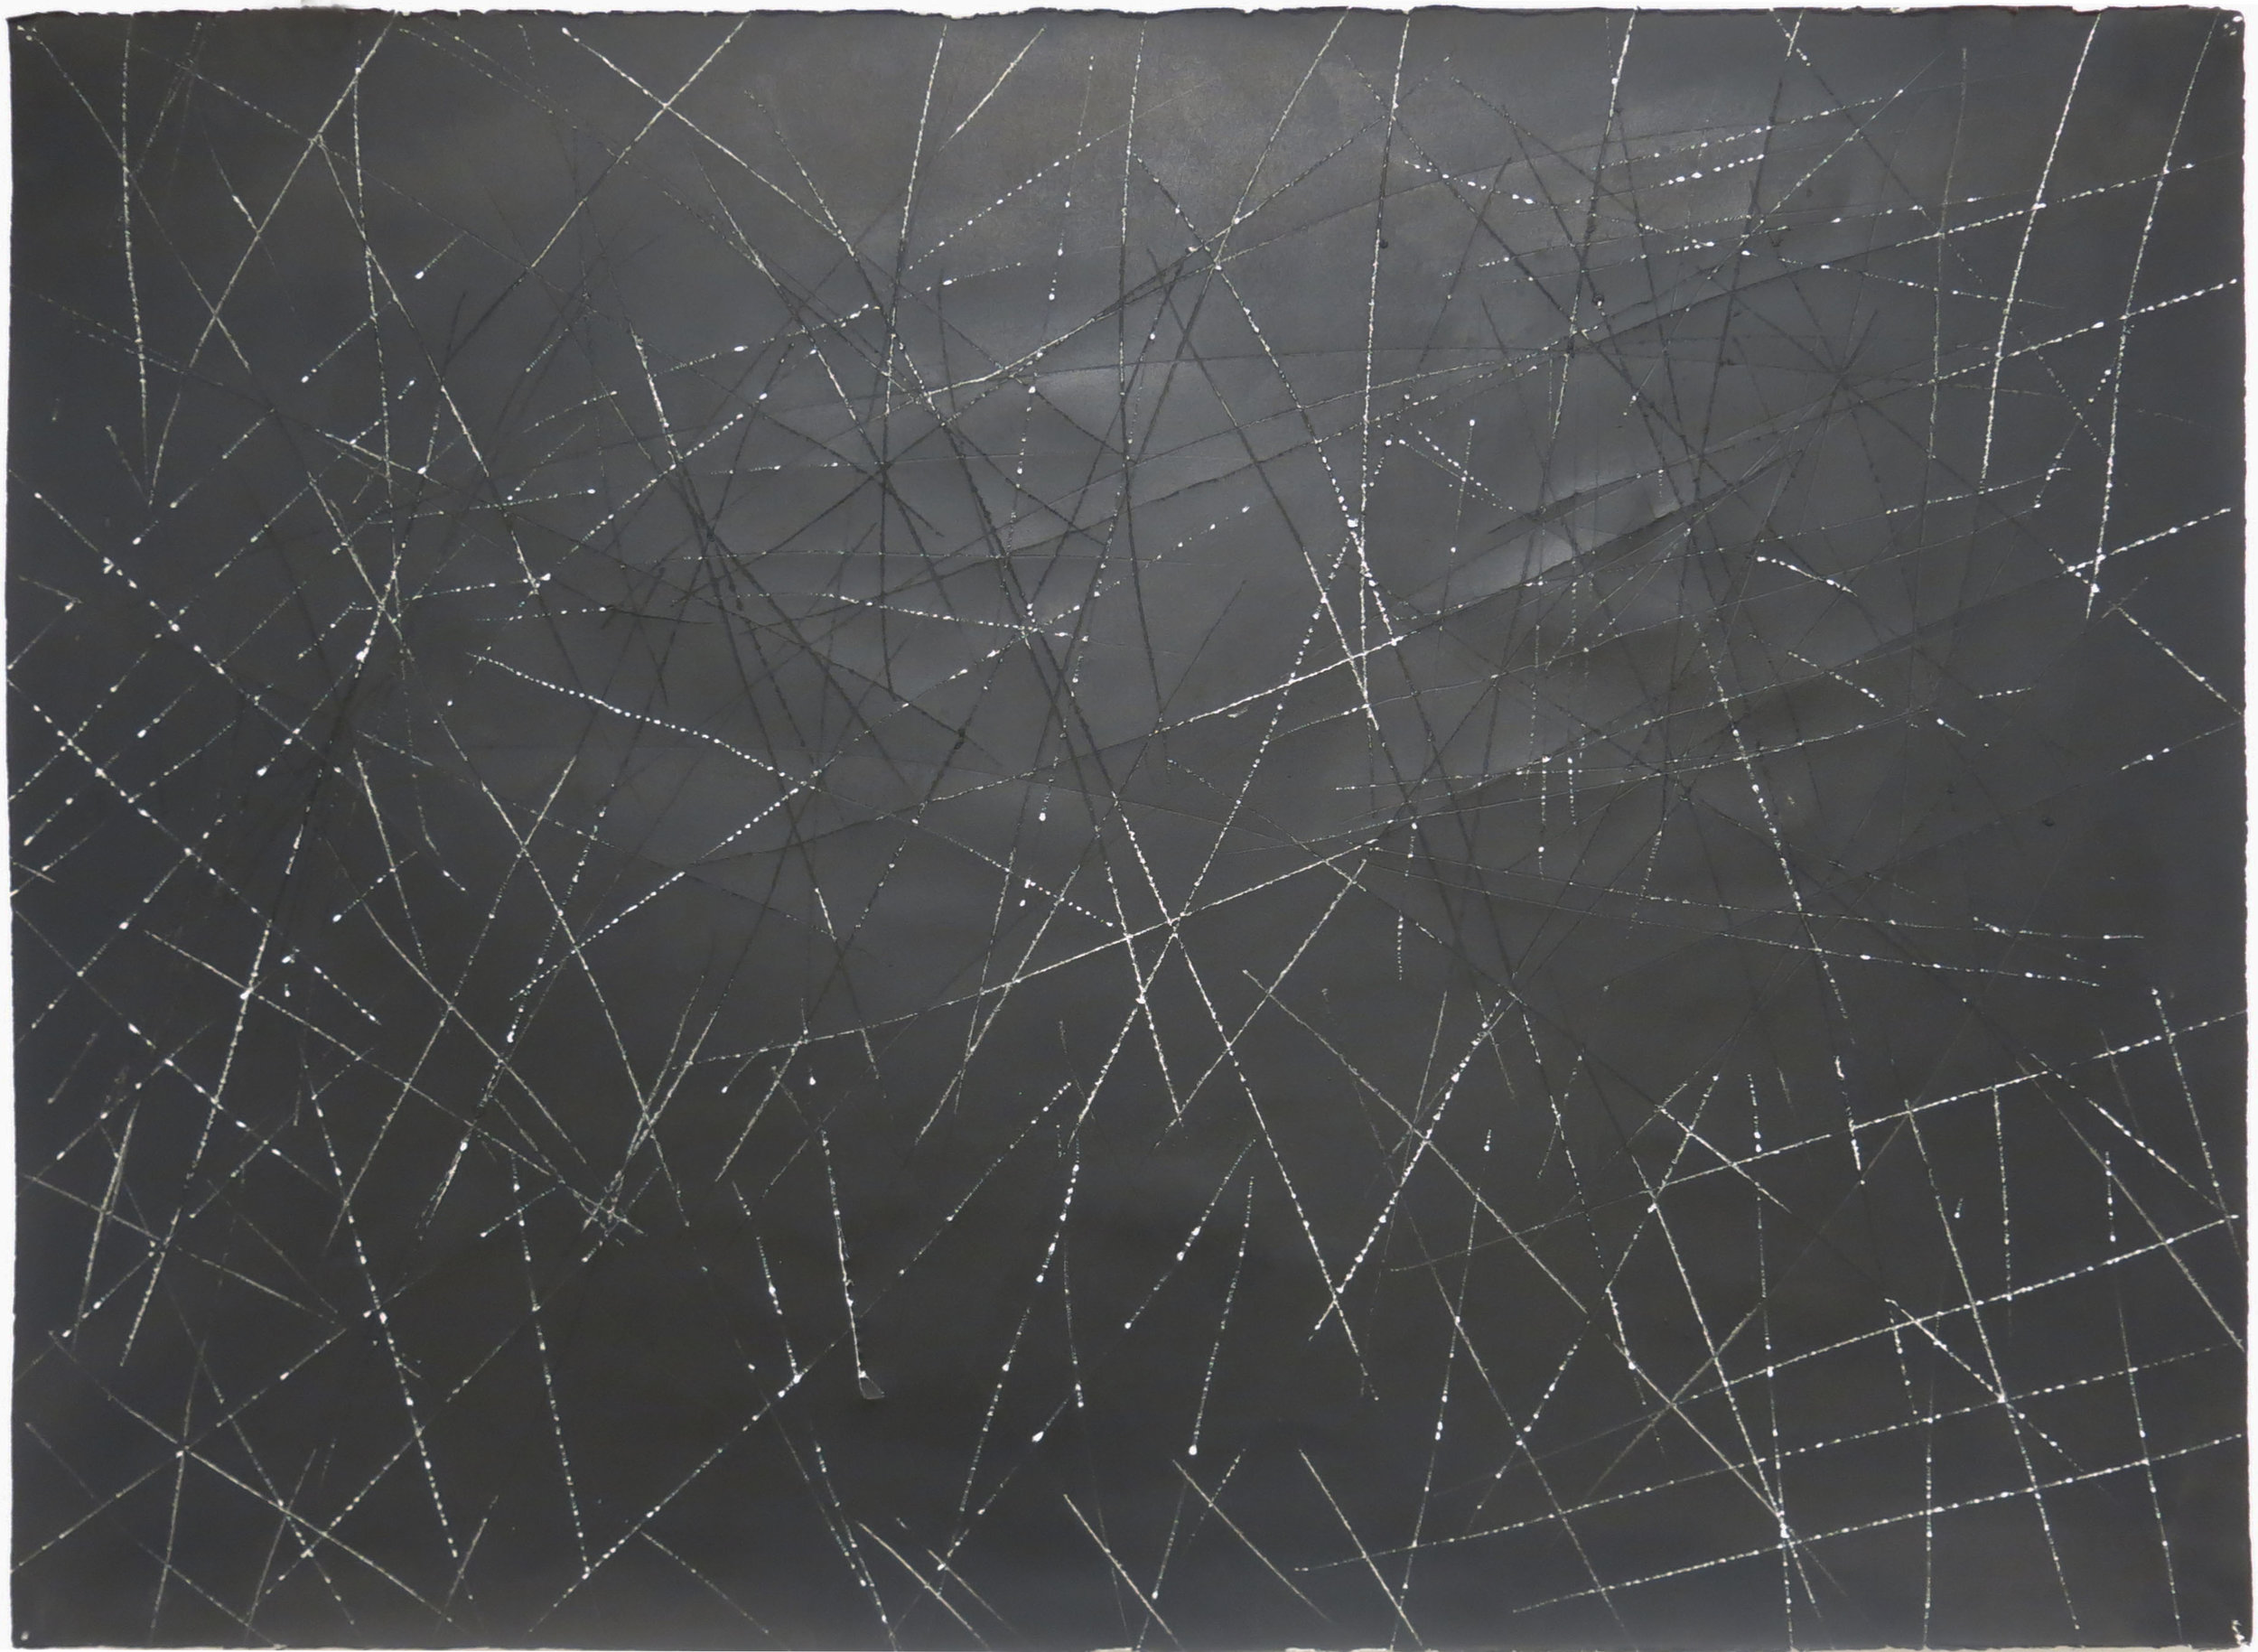 Edward Finnegan,  #5 (Chaos Series) , February 23, 1985, Ink on arches paper, 22.5h x 30w in.